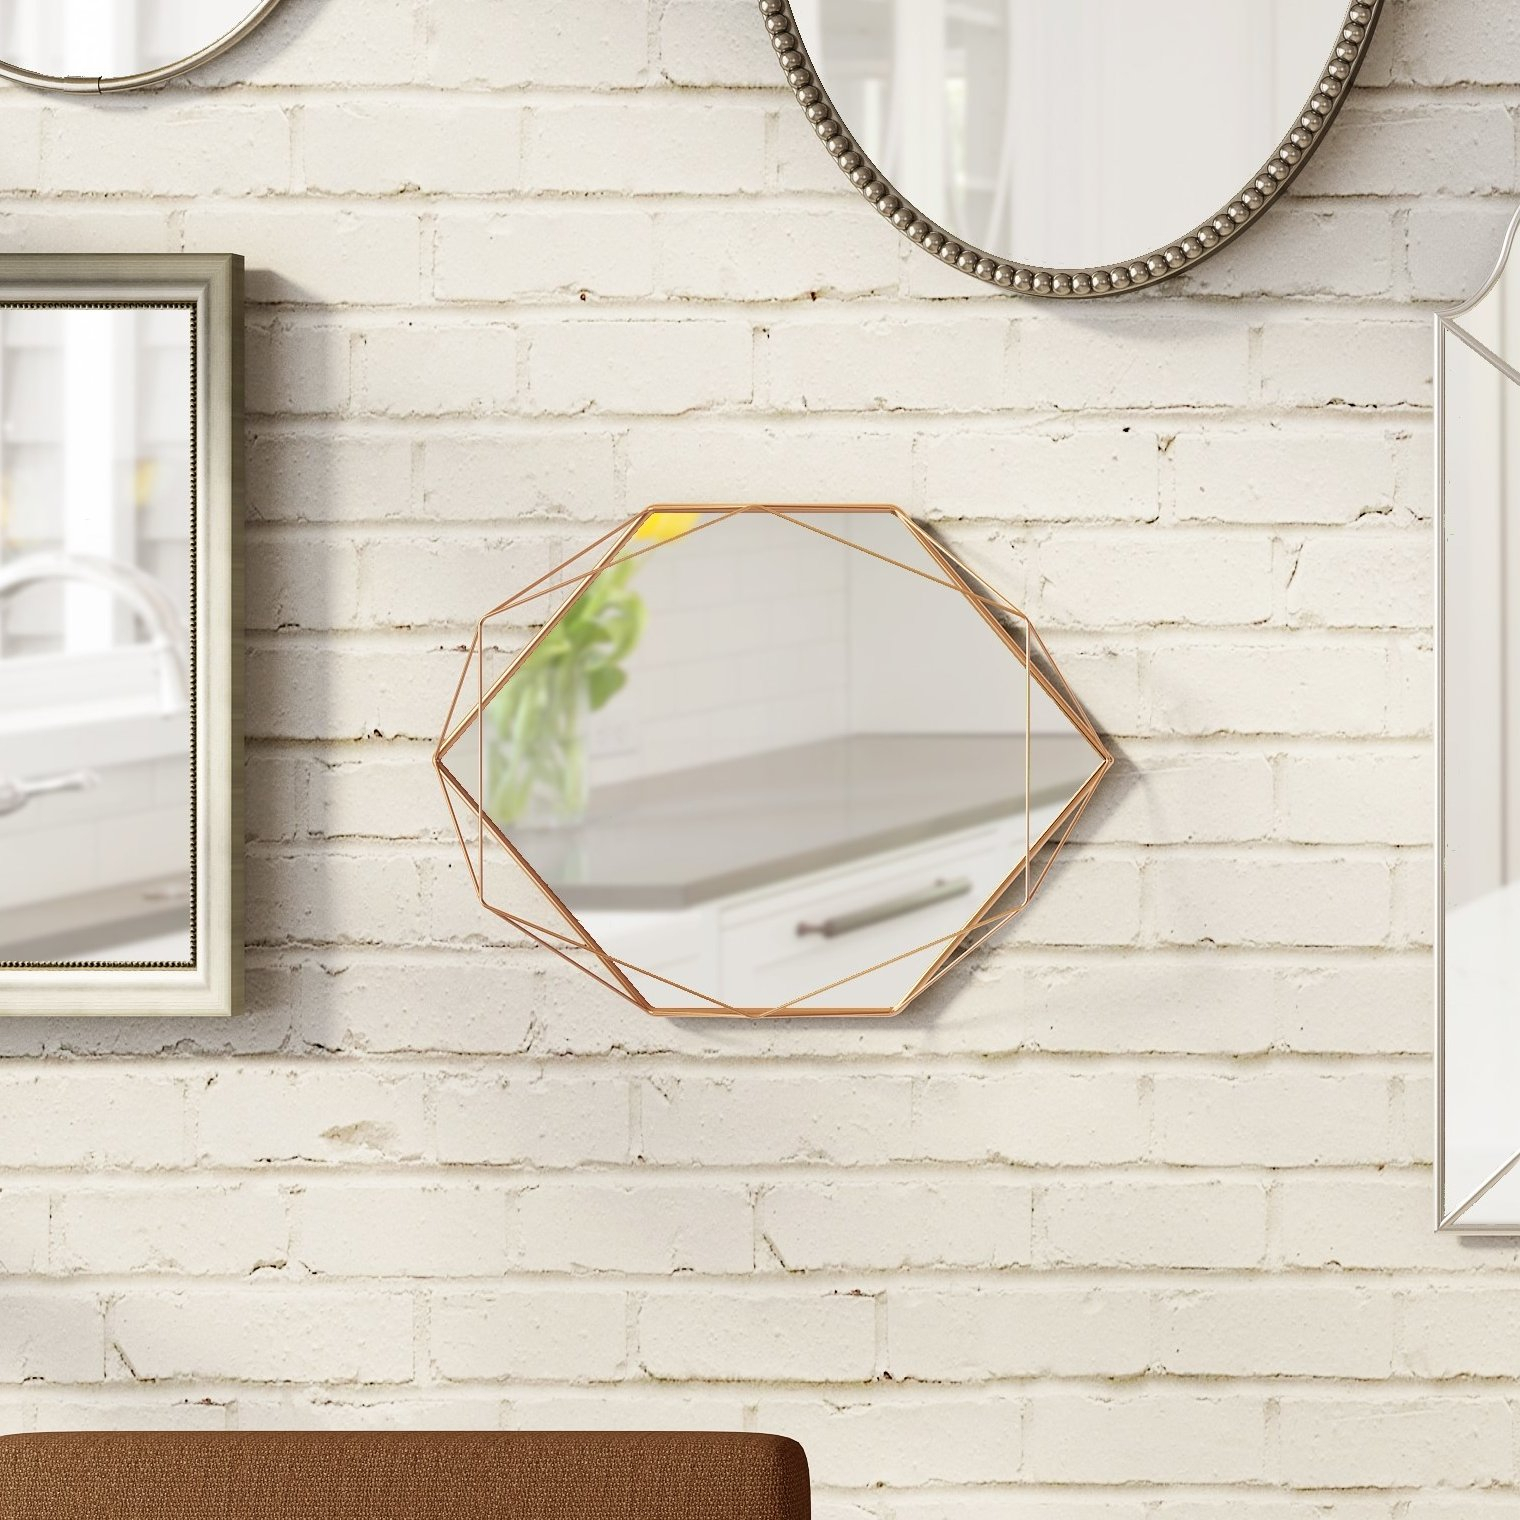 Prisma Modern & Contemporary Accent Mirror With Regard To Guidinha Modern & Contemporary Accent Mirrors (View 23 of 30)